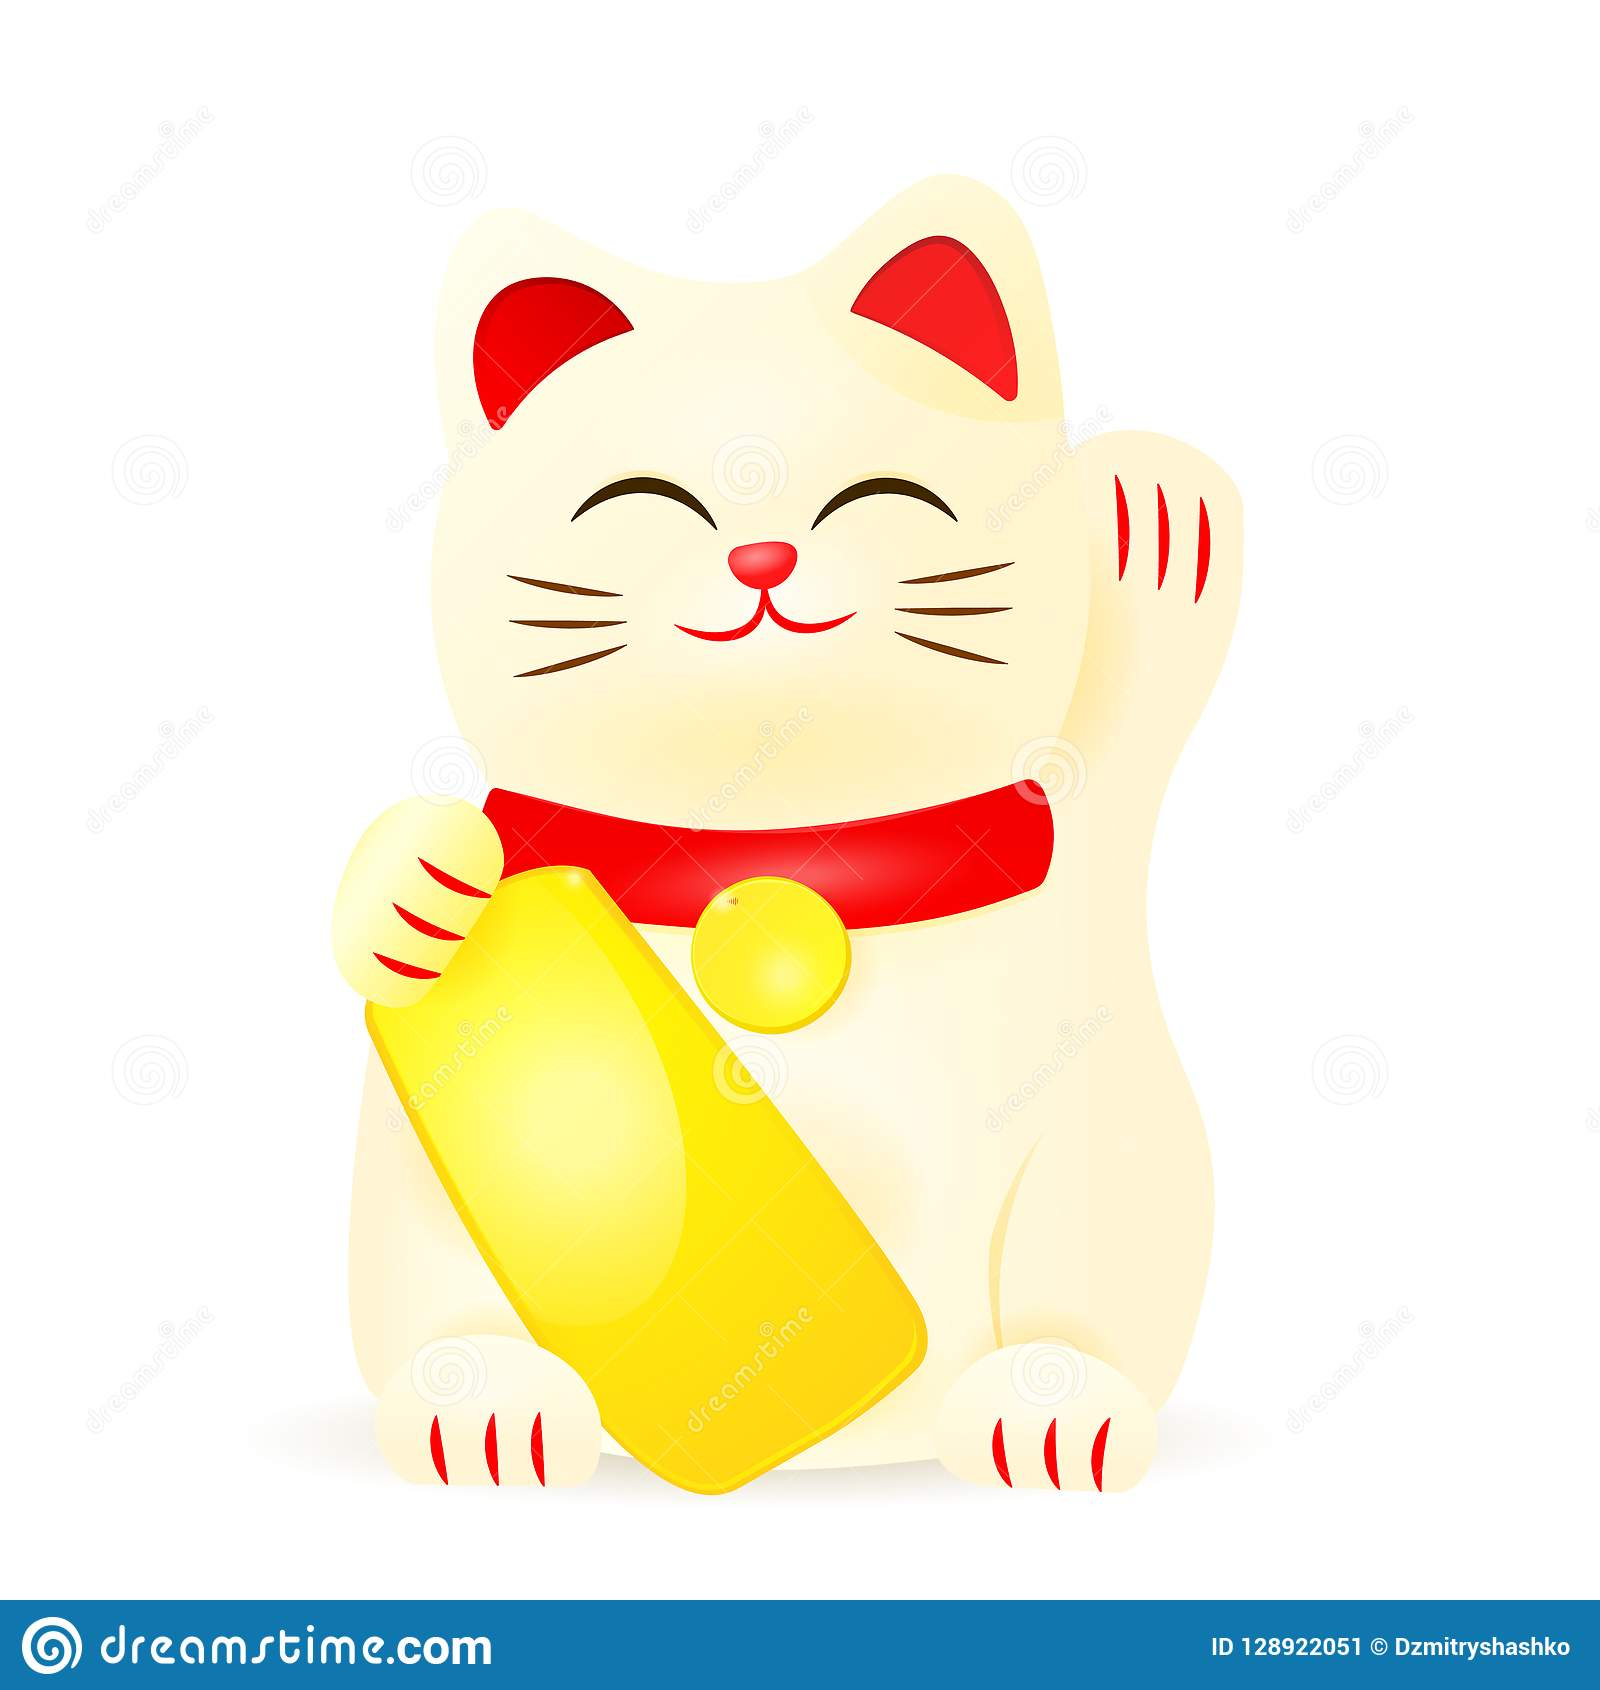 hight resolution of japan lucky cat clipart image isolated on white background